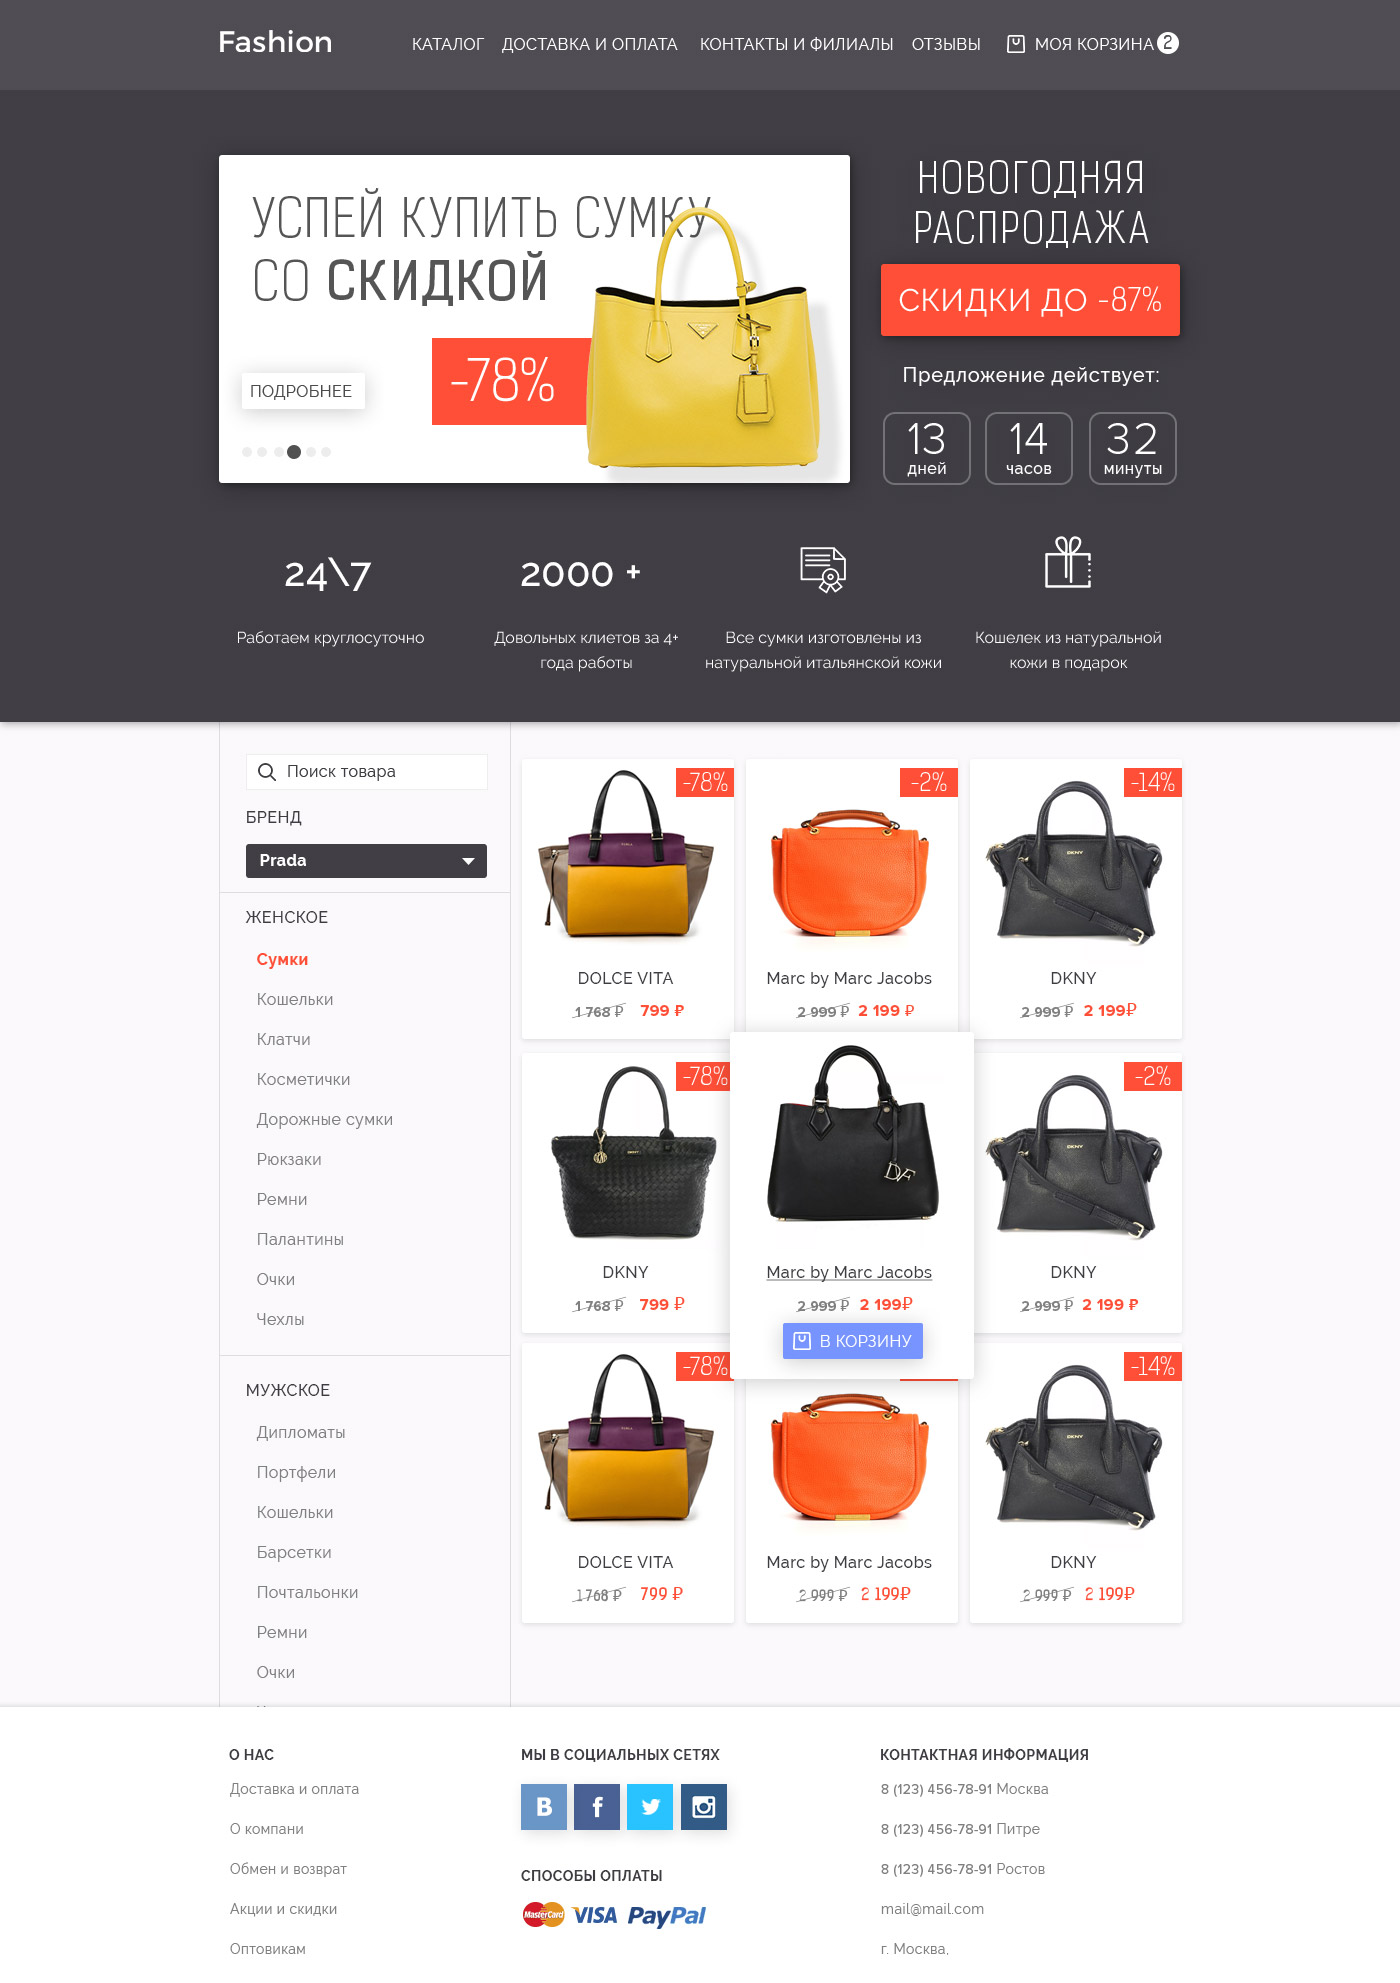 Free ecommerce fashion deal website template free psd at for Free ecommerce website templates